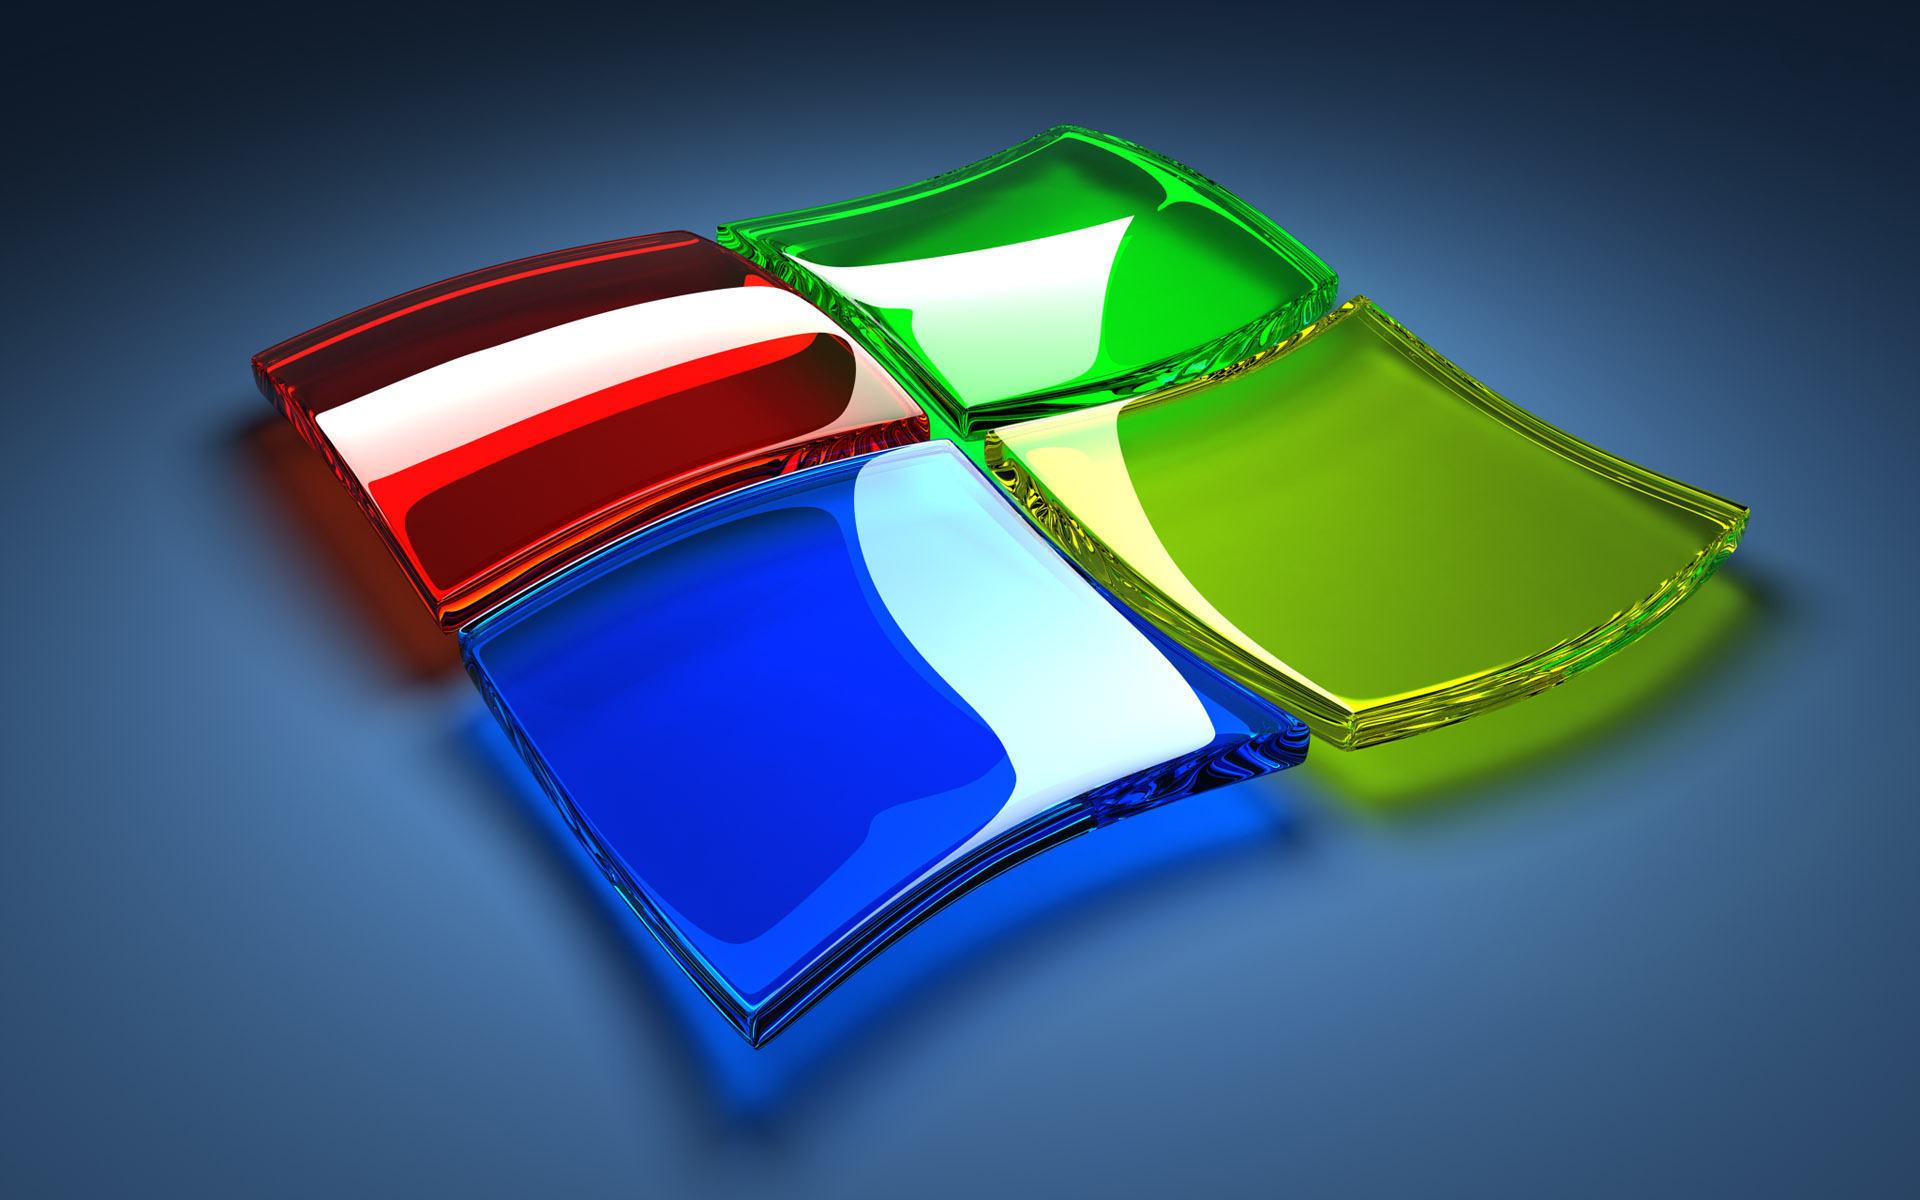 Windows 8 Backgrounds   High resolution wallpapers for your PC 1920x1200